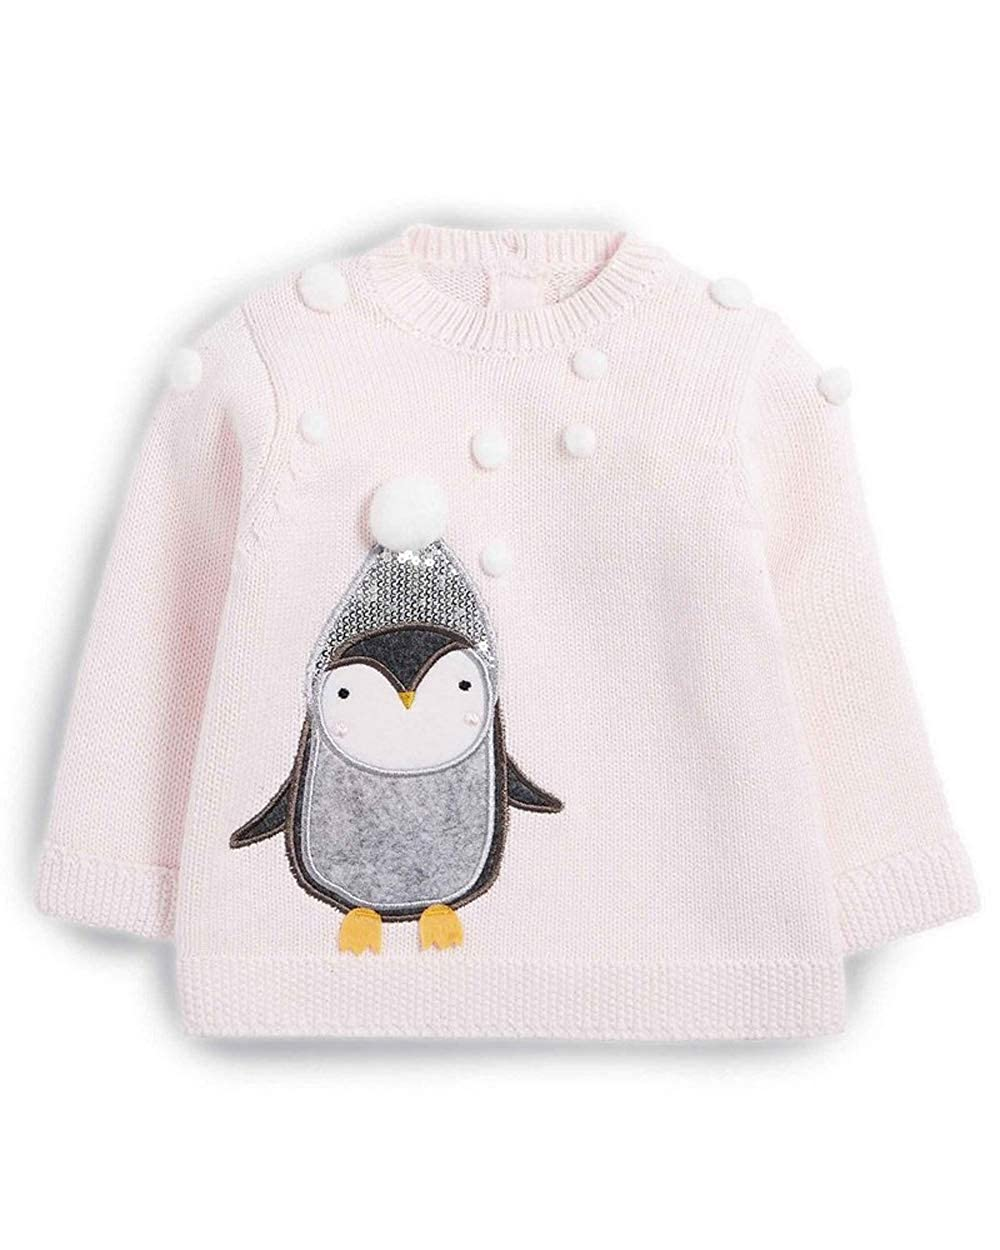 Mamas & Papas Knitted Christmas Penguin Pink Jumper with 3D Pom Poms & Sequins 100% Cotton - 6-9 Months